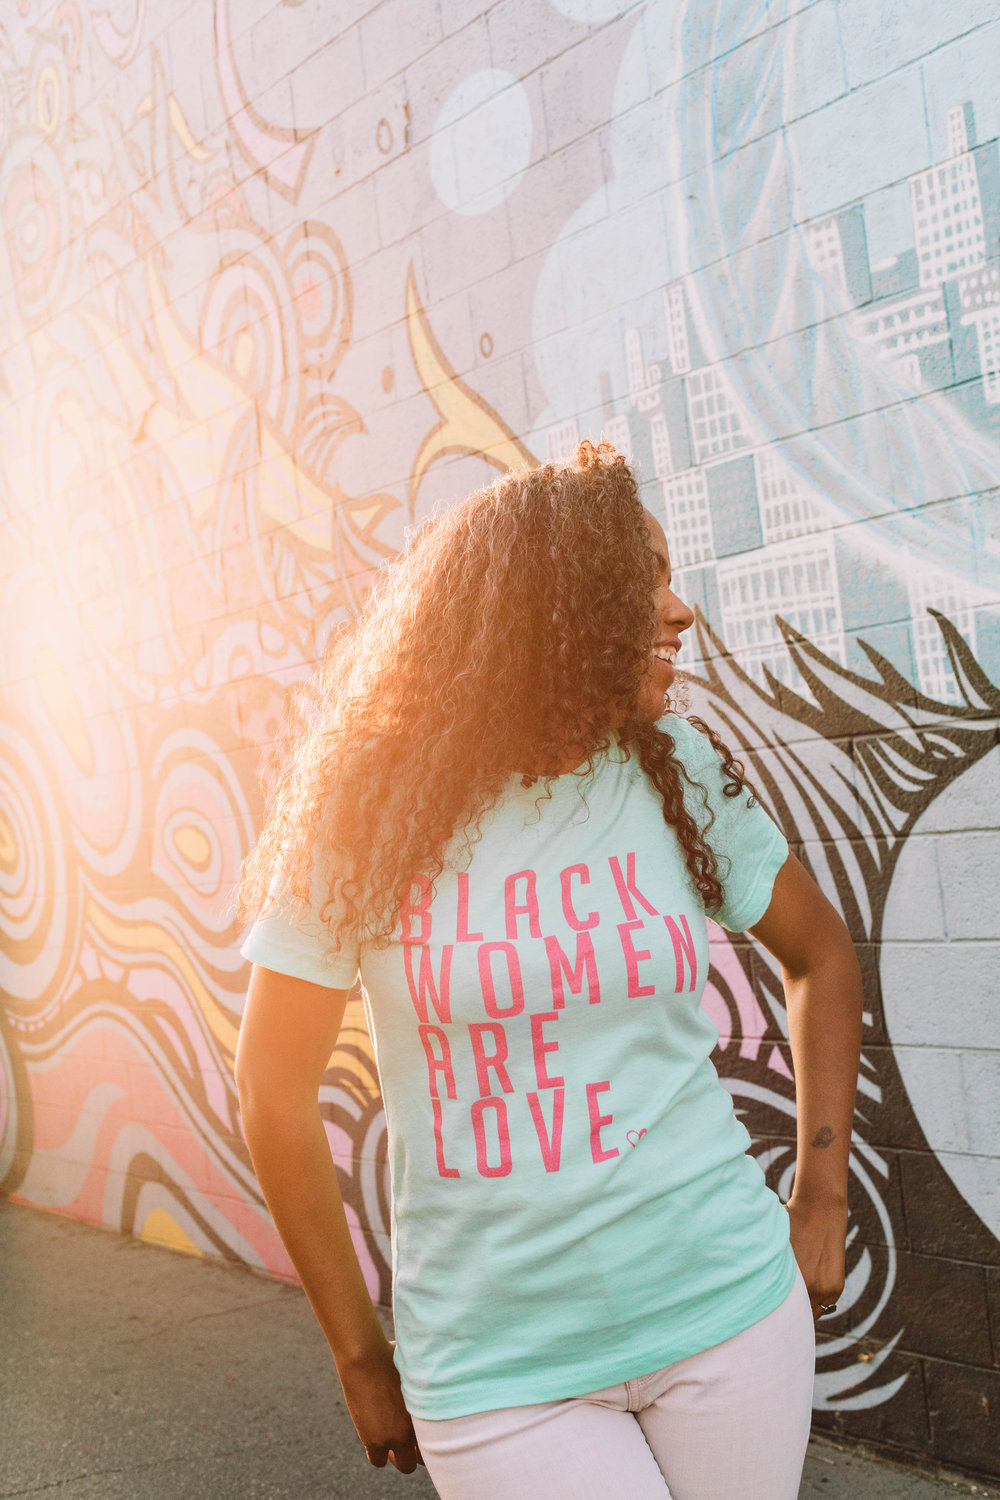 Black Women Are Love is… - …committed to honoring and celebrating the richness, the depth, and the potency of Black women